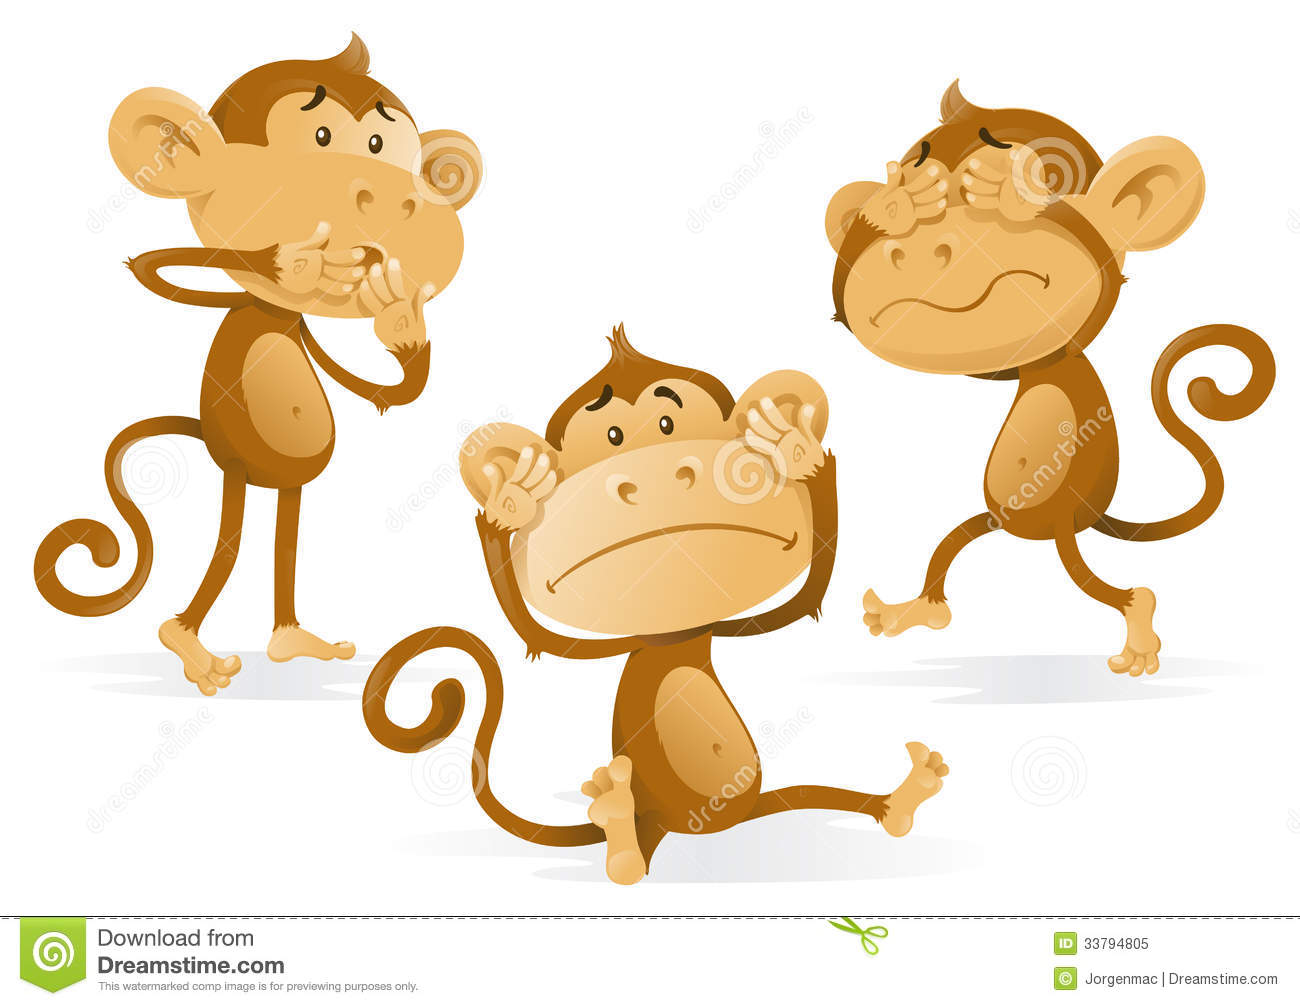 Hear no evil see no evil speak no evil monkeys clipart.